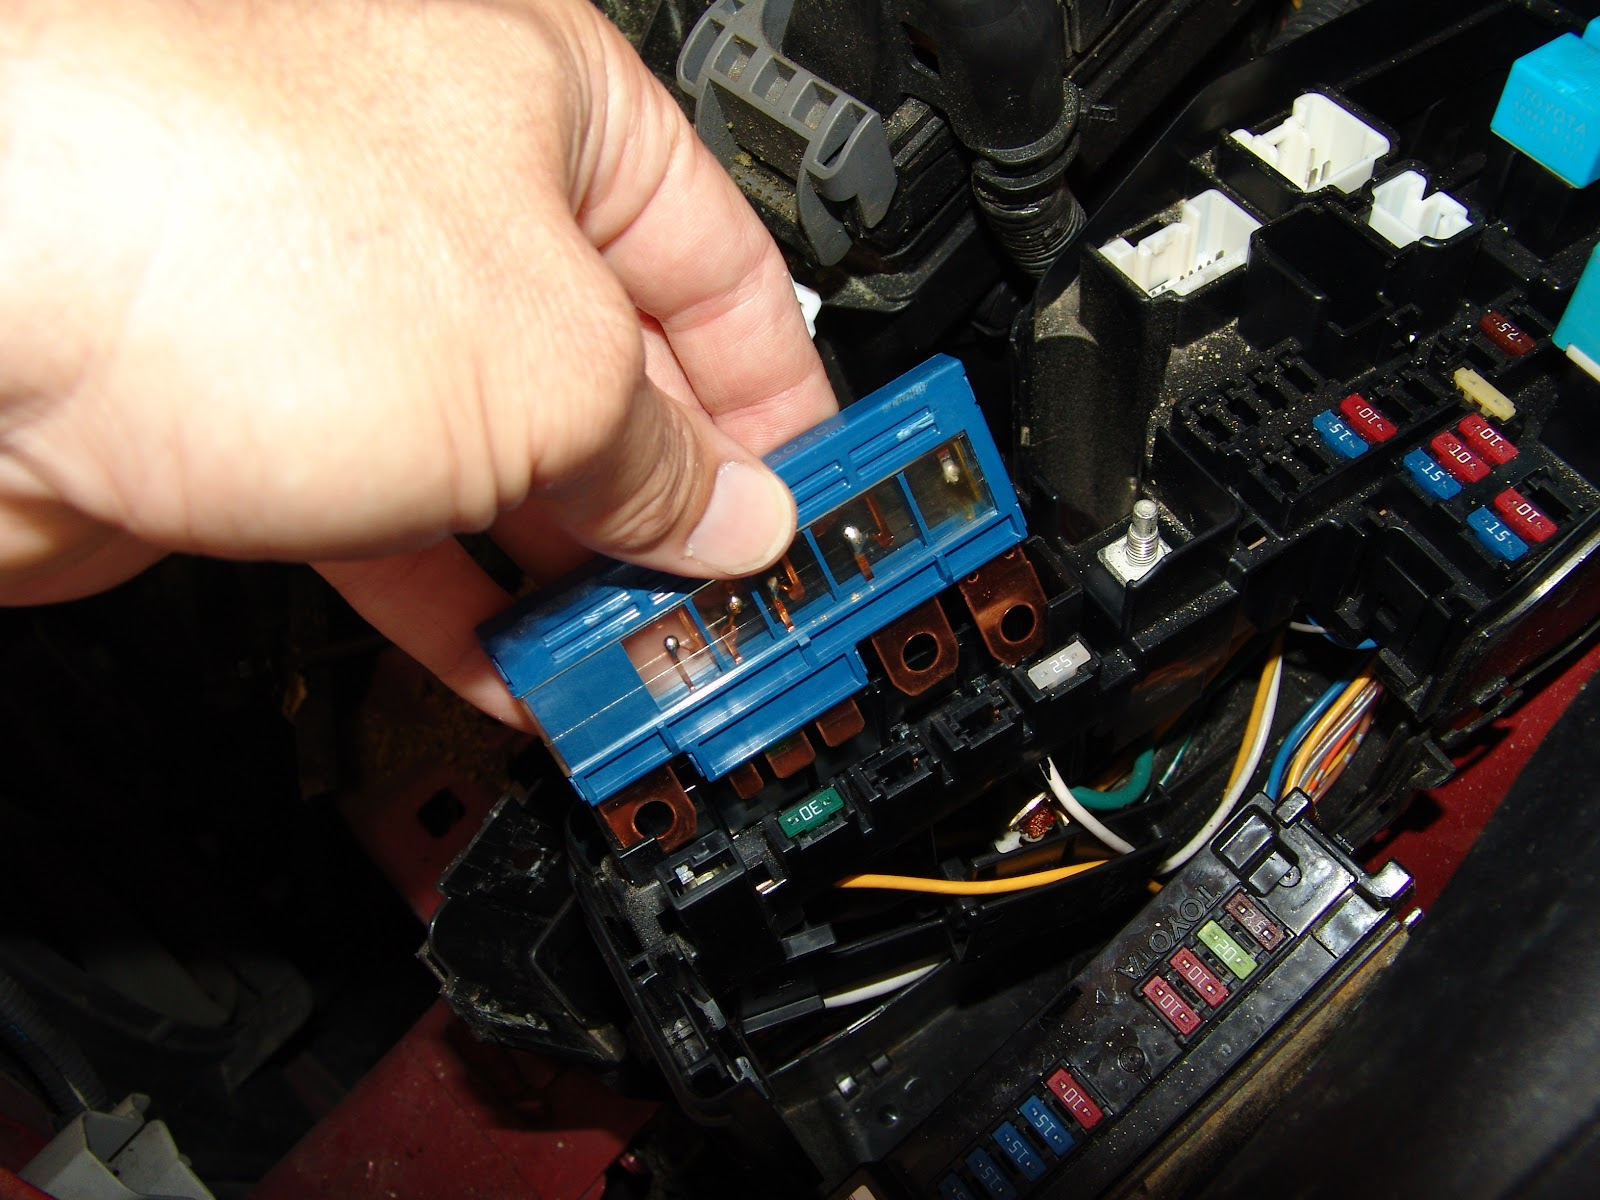 2007 Toyota Highlander Fuse Diagram Manual Of Wiring Box Get Free Image About Location